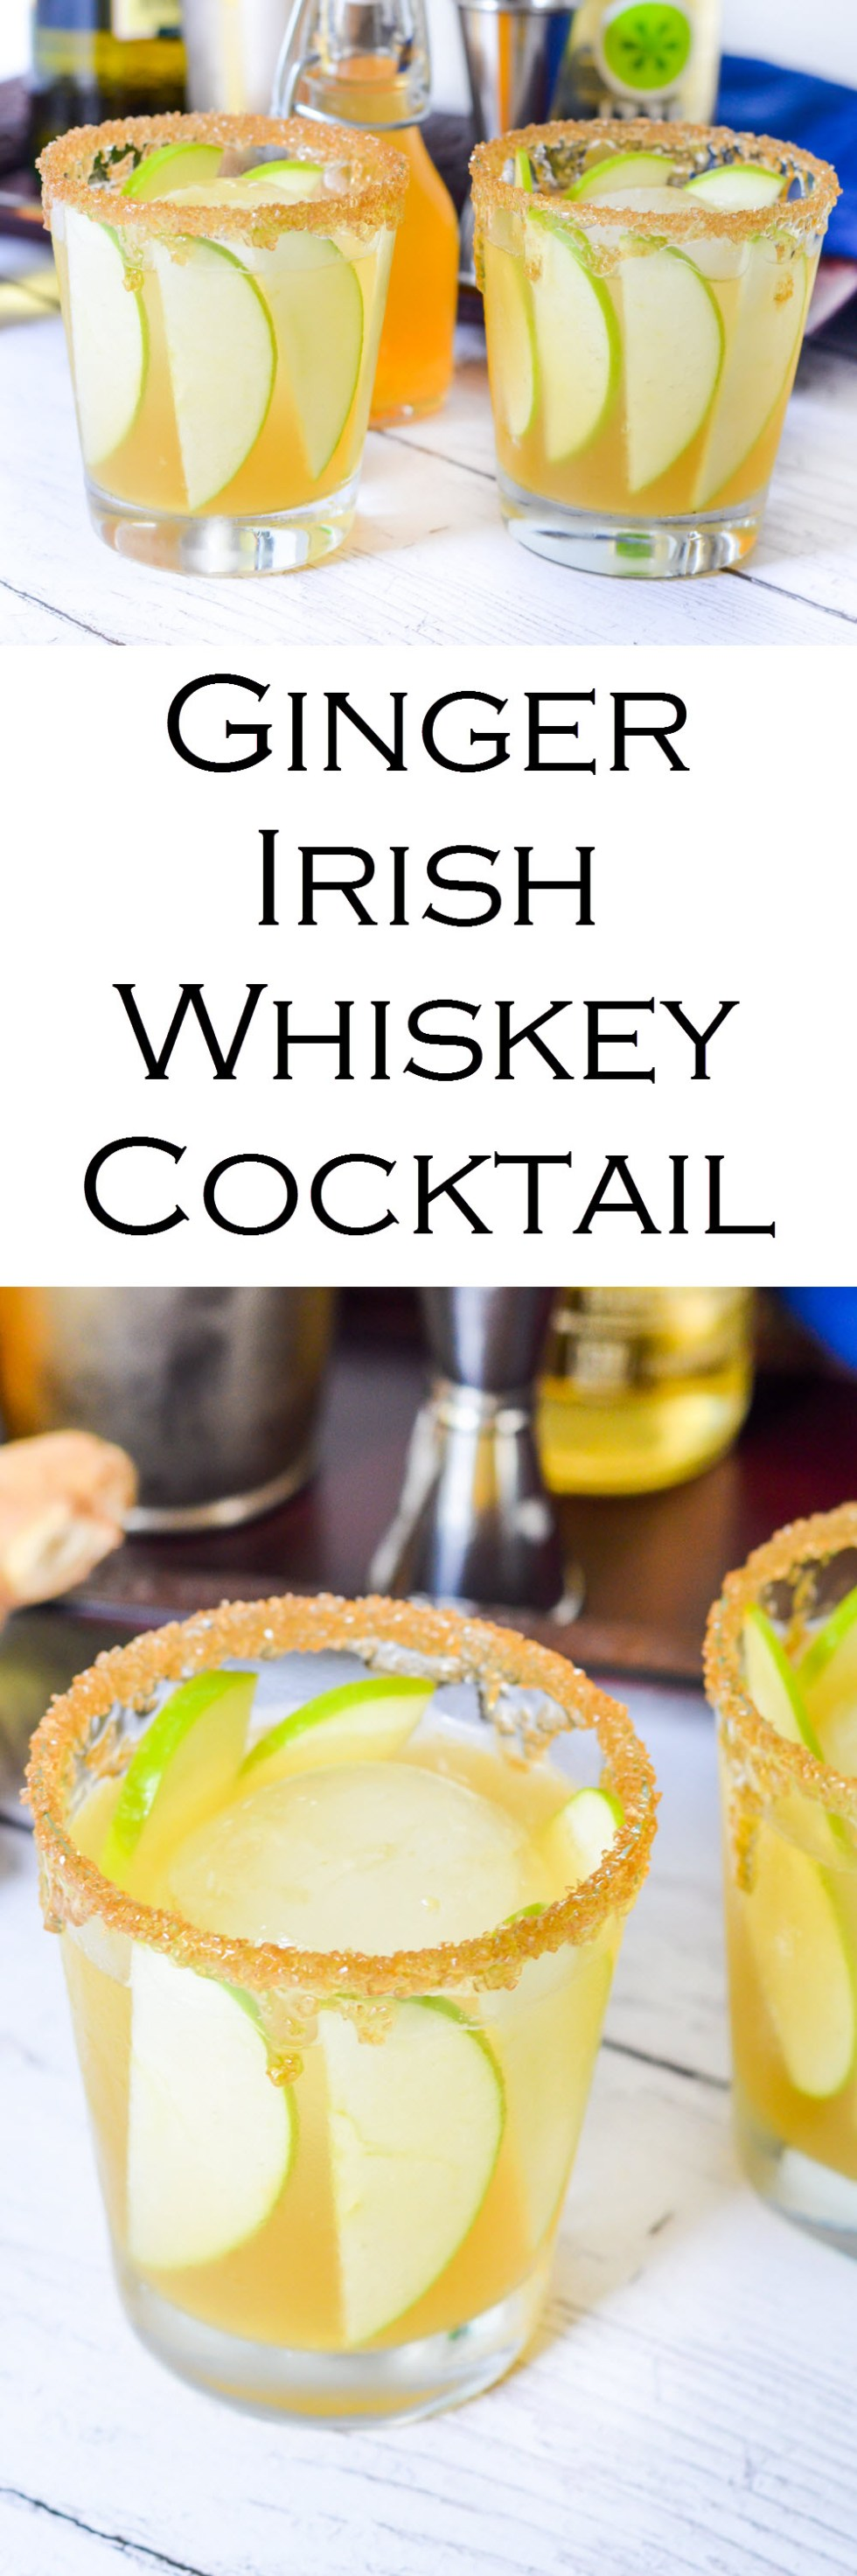 Irish Whiskey Cocktail Recipe made with @izze Sparkling Apple Juice - a great cocktail for whiskey lovers. Good for St. Patrick's Day and in the Fall!